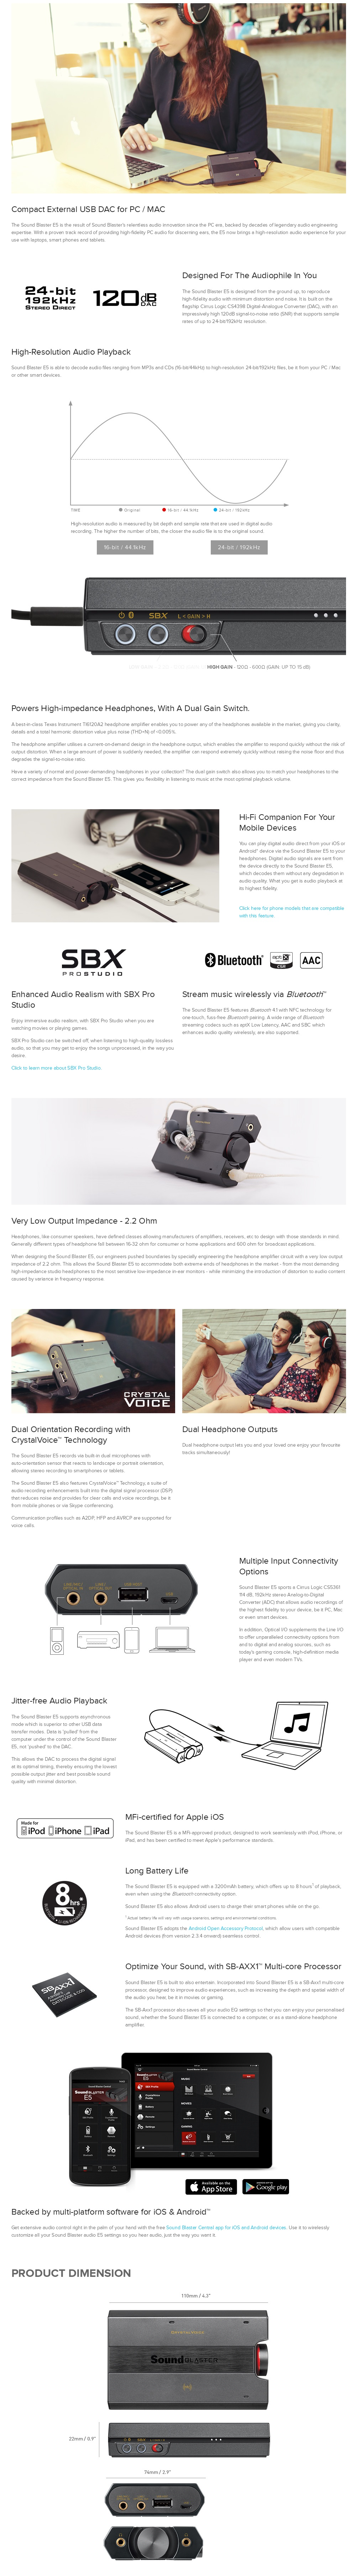 A large marketing image providing additional information about the product Creative Sound Blaster E5 High Resolution USB DAC and Portable Headphone Amp - Additional alt info not provided